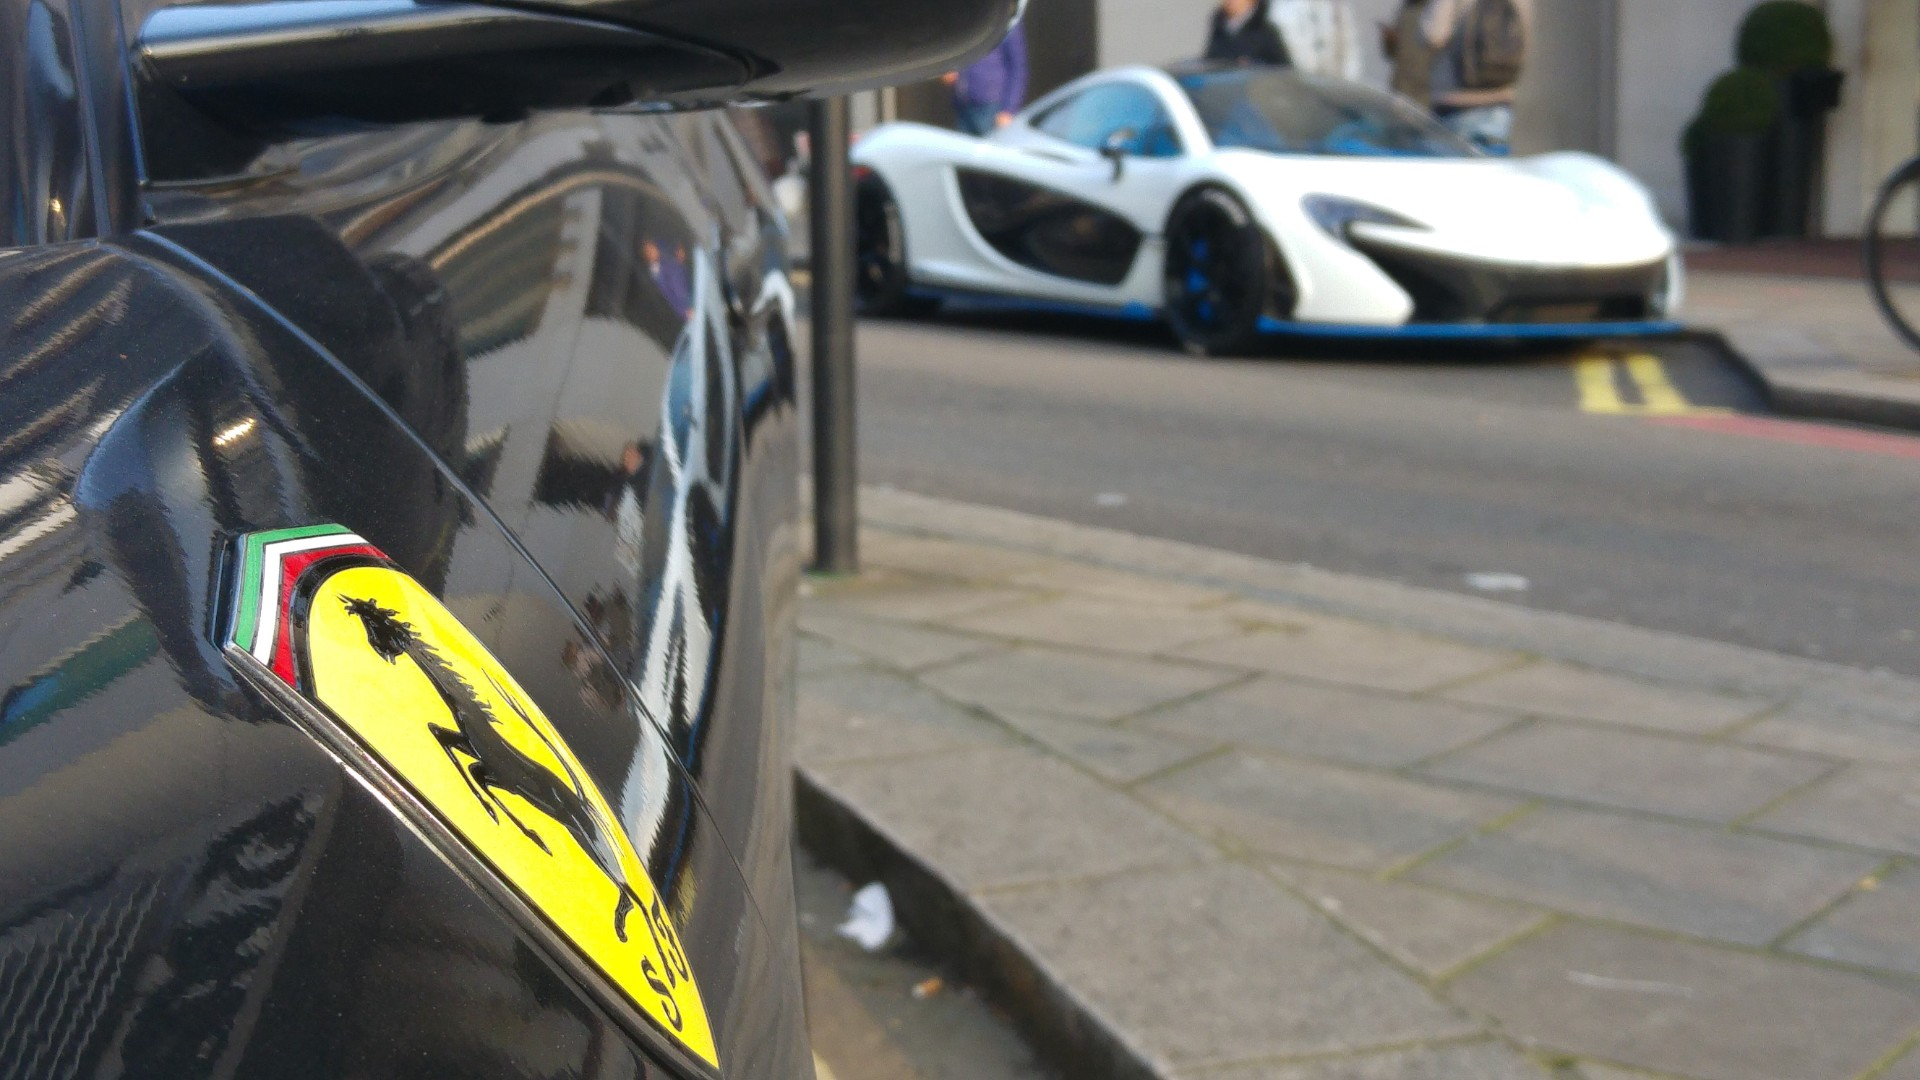 acoustic cameras to catch supercars in London